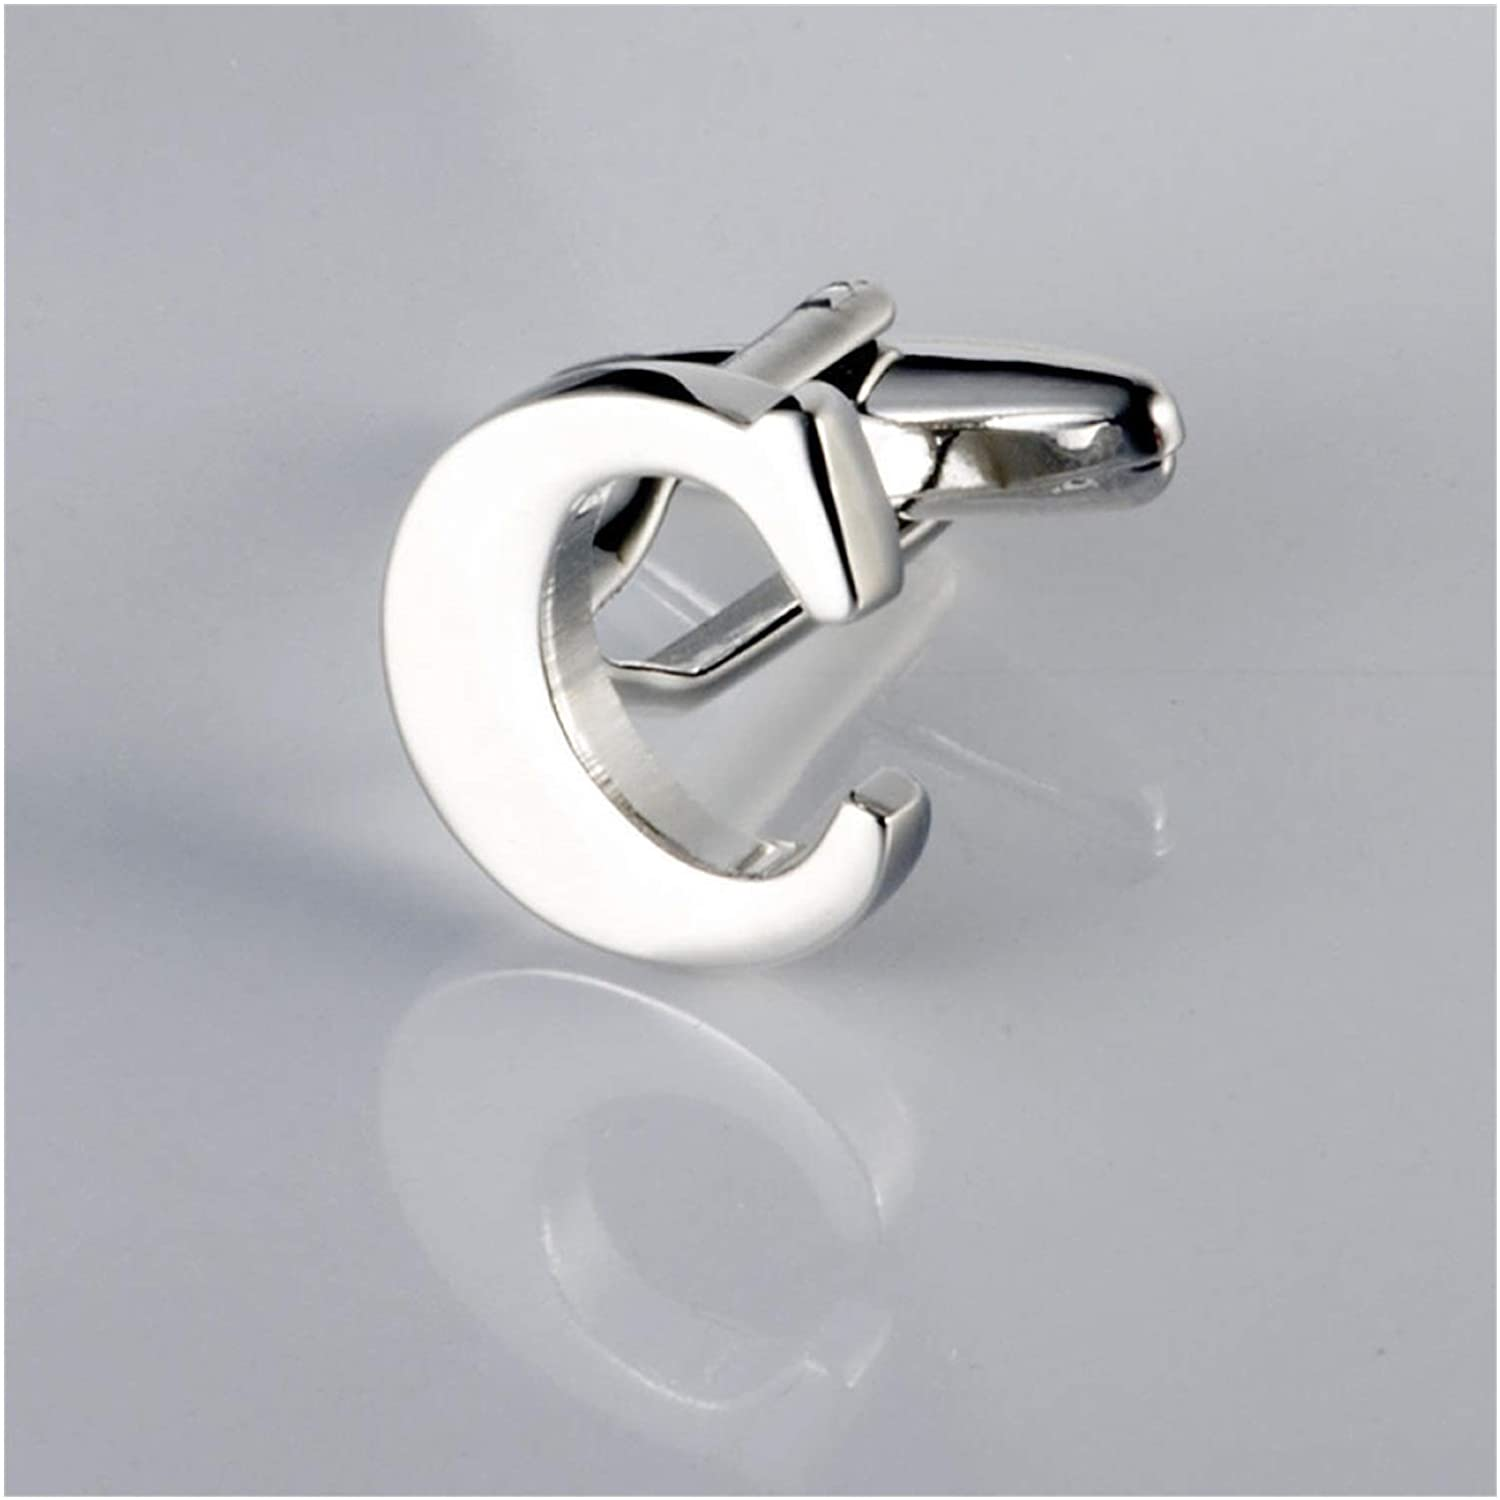 bayue Letter In a popularity Cufflinks Pure Metal Sh Gift Max 90% OFF Silver Groom